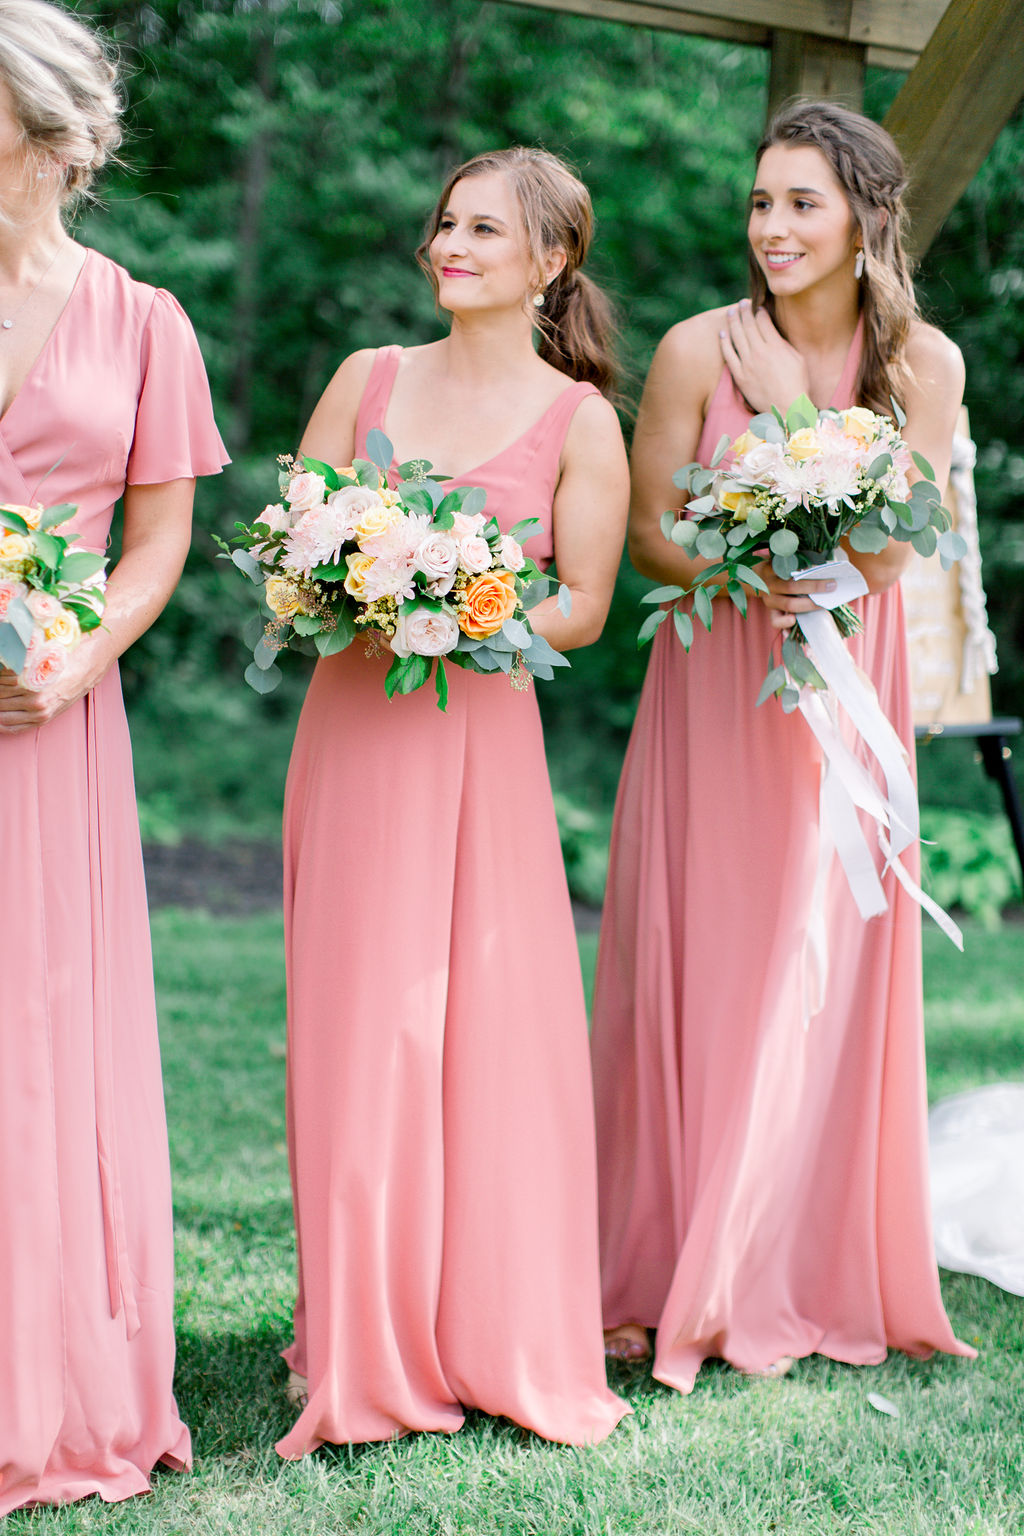 Bridesmaids look on , while bride and groom say their personalized vows at Country Lane Lodge, wearing long , blush gowns, all in a different style, each perfectly fitting their unique body type. Bridesmaids hold bouquets of cream, blush, and yellow flowers, with roses and a mixture of greenery.